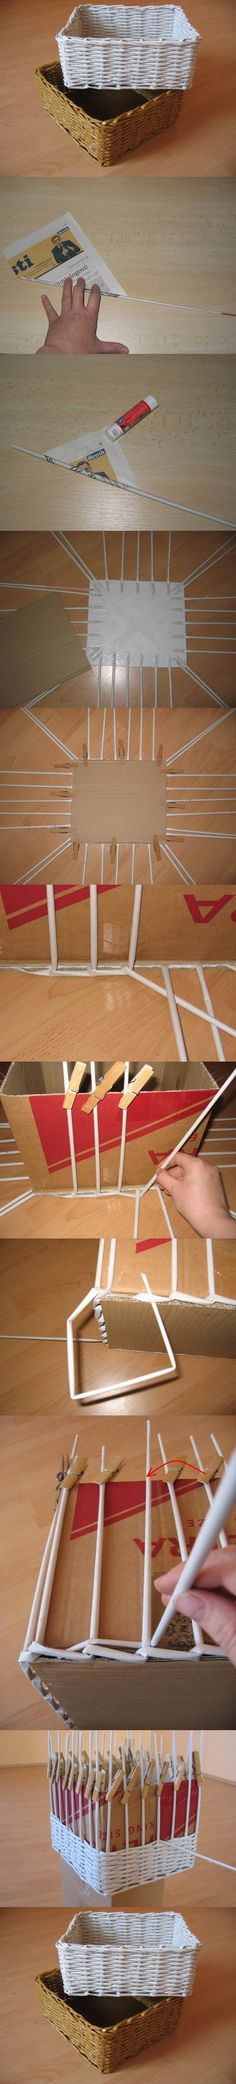 DIY Woven Paper Storage Box | iCreativeIdeas.com Follow Us on Facebook --> www.facebook.com/...